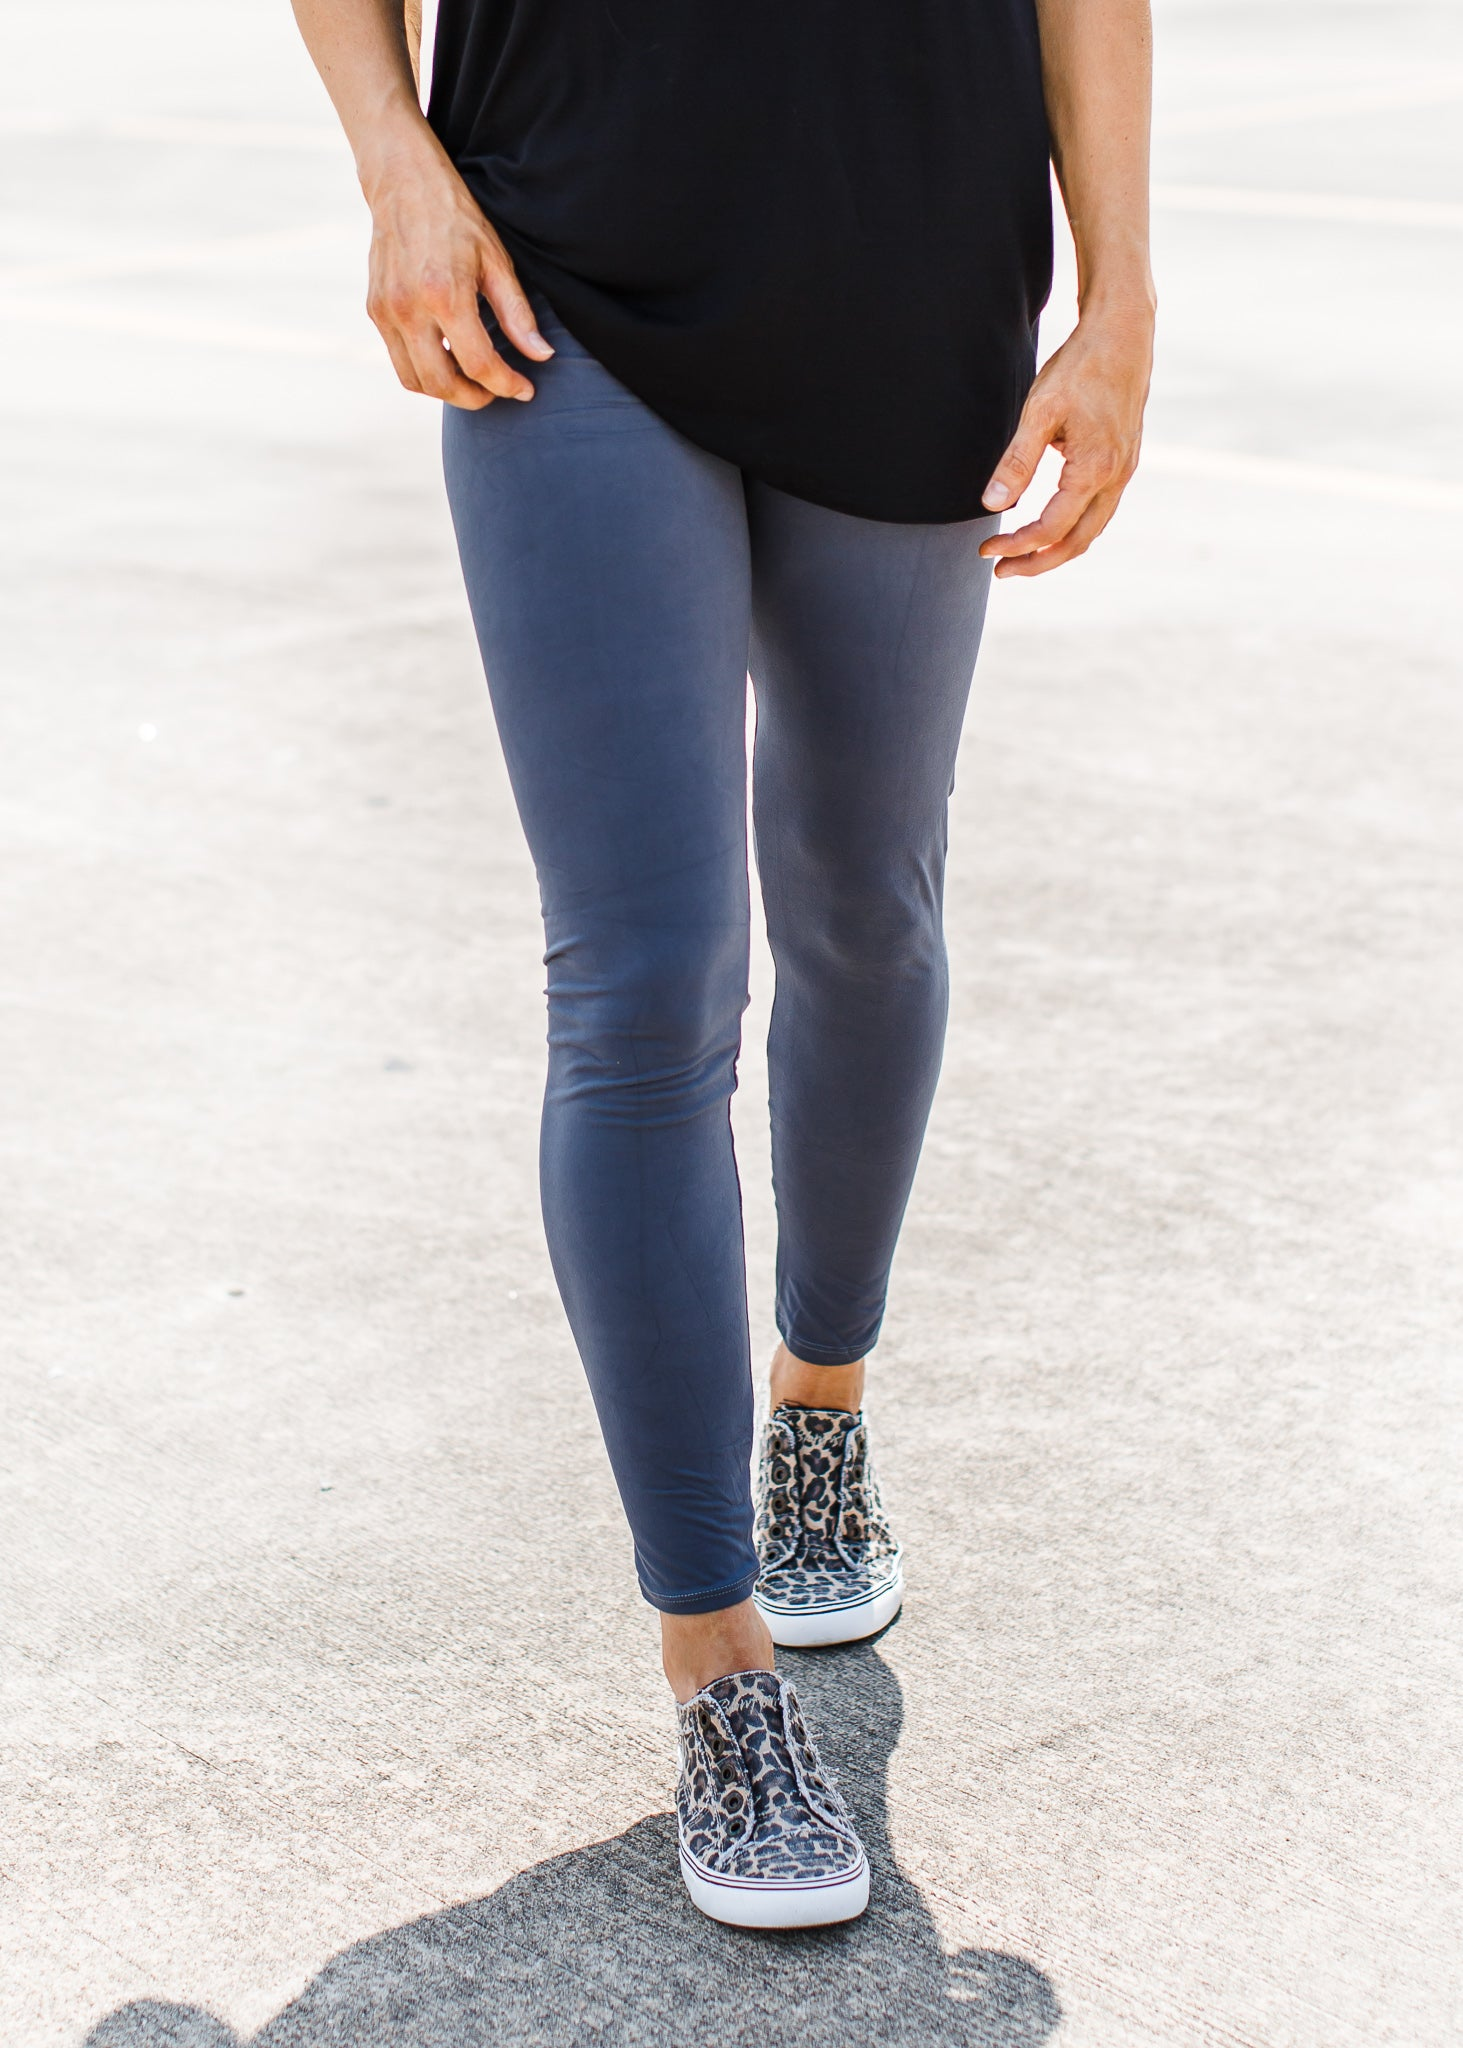 High Waist Leggings Charcoal ( One Size & One Size Plus )